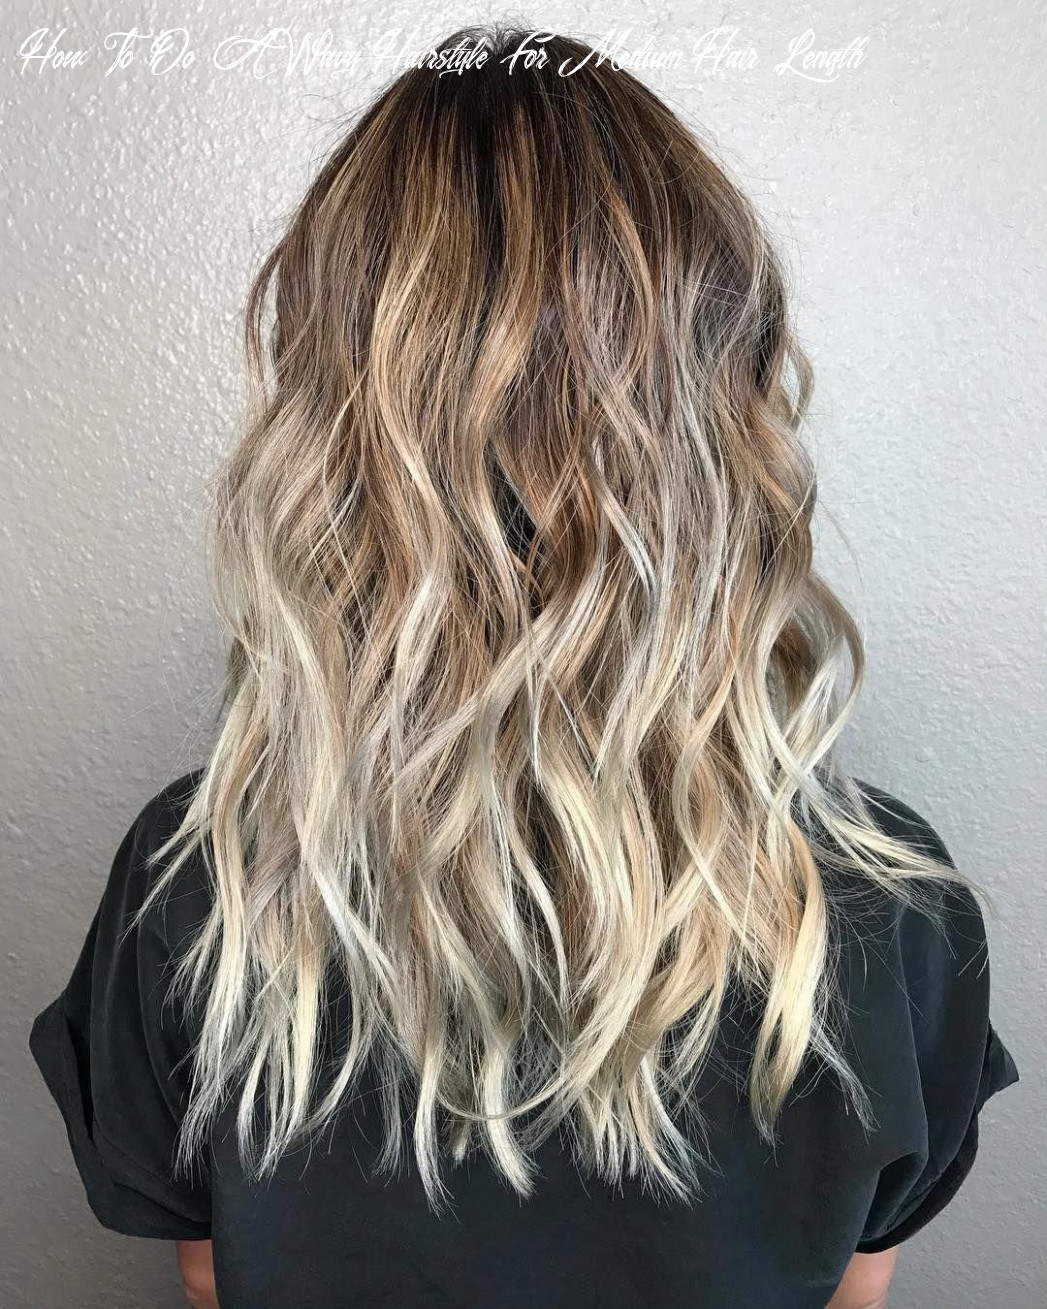 Pin on hair how to do a wavy hairstyle for medium hair length